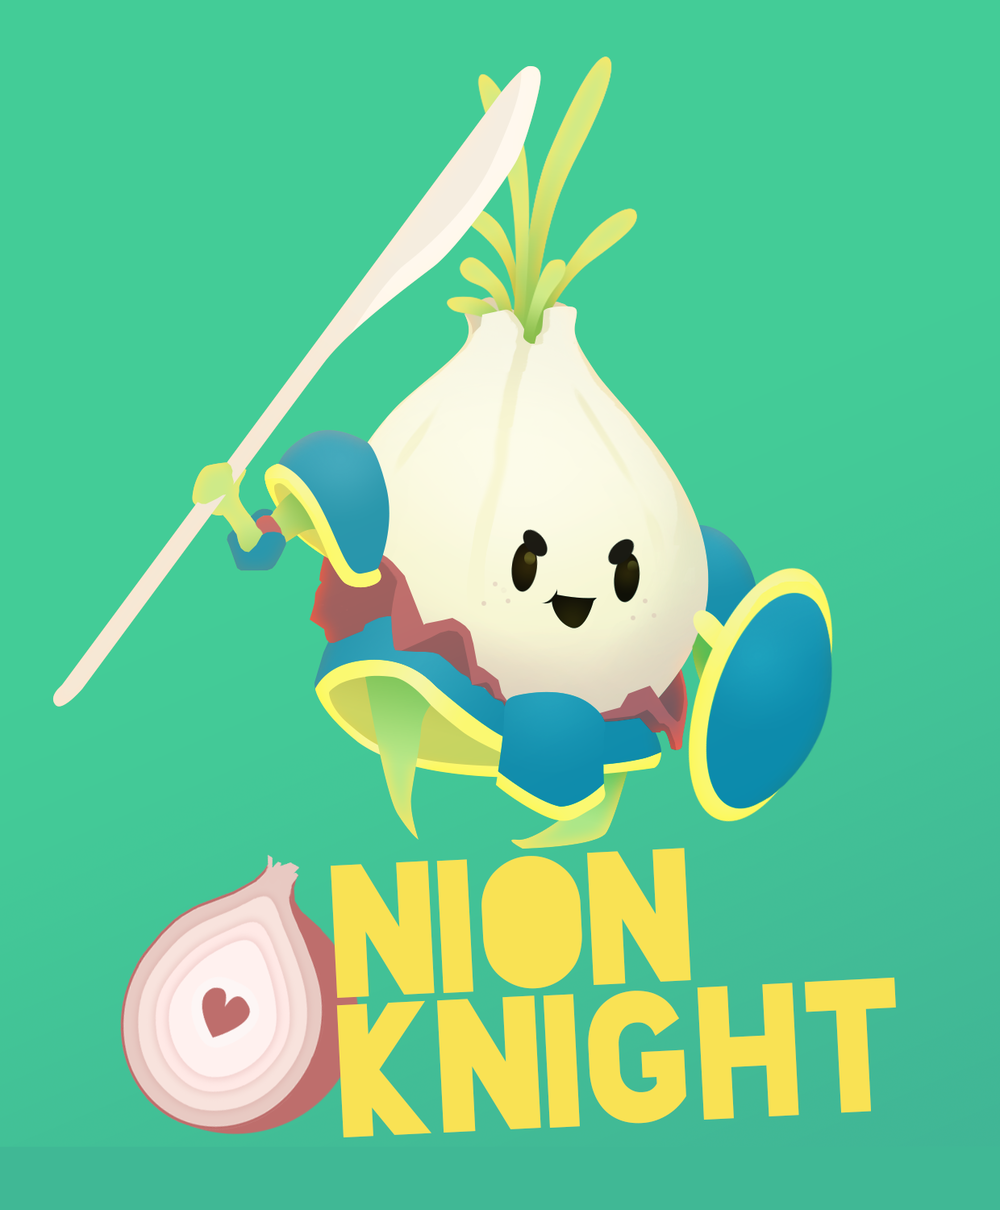 Onion_Knight.png